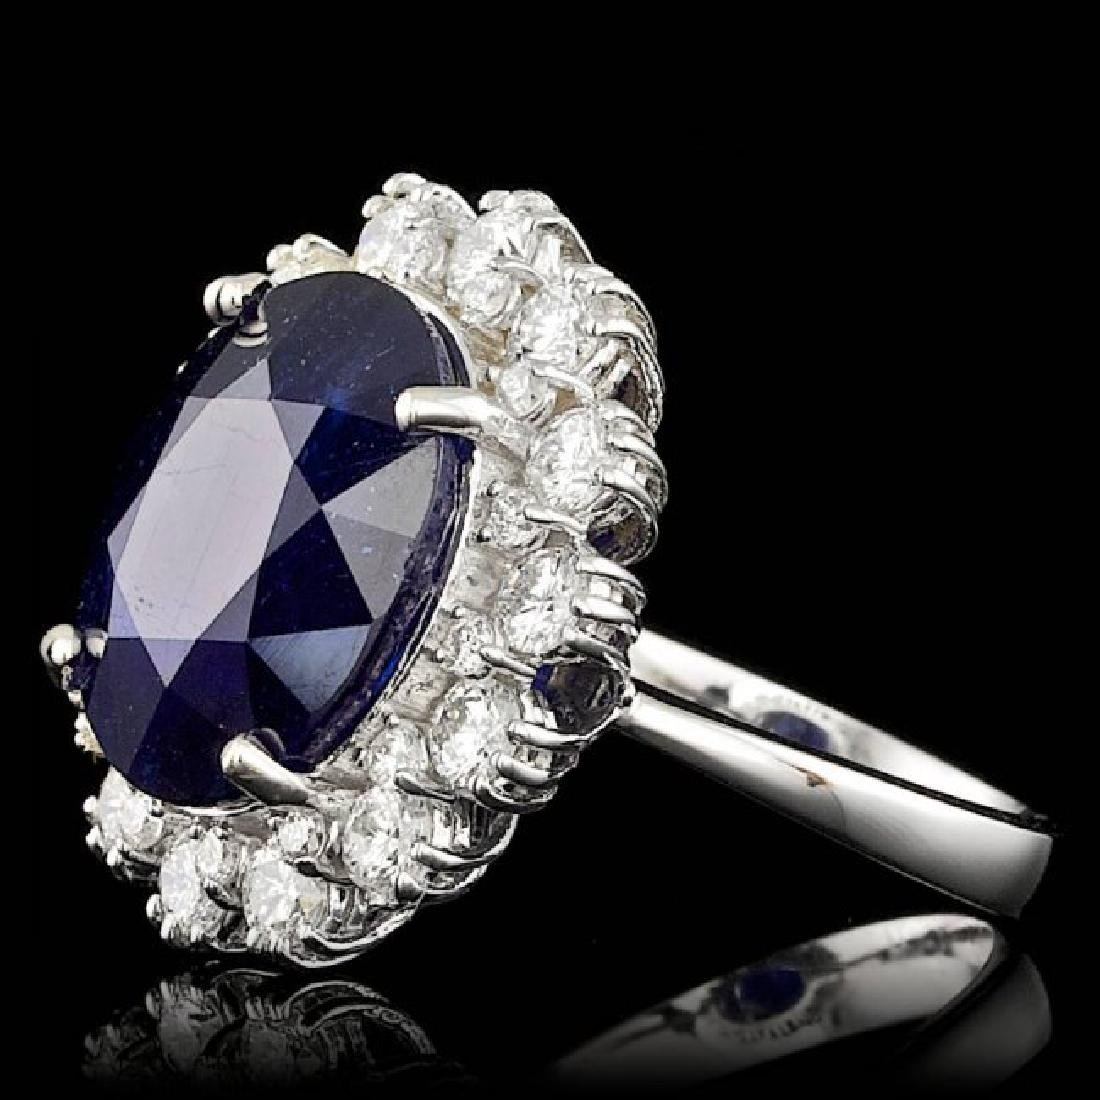 14k Gold 11.00ct Sapphire 1.47ct Diamond Ring - 2